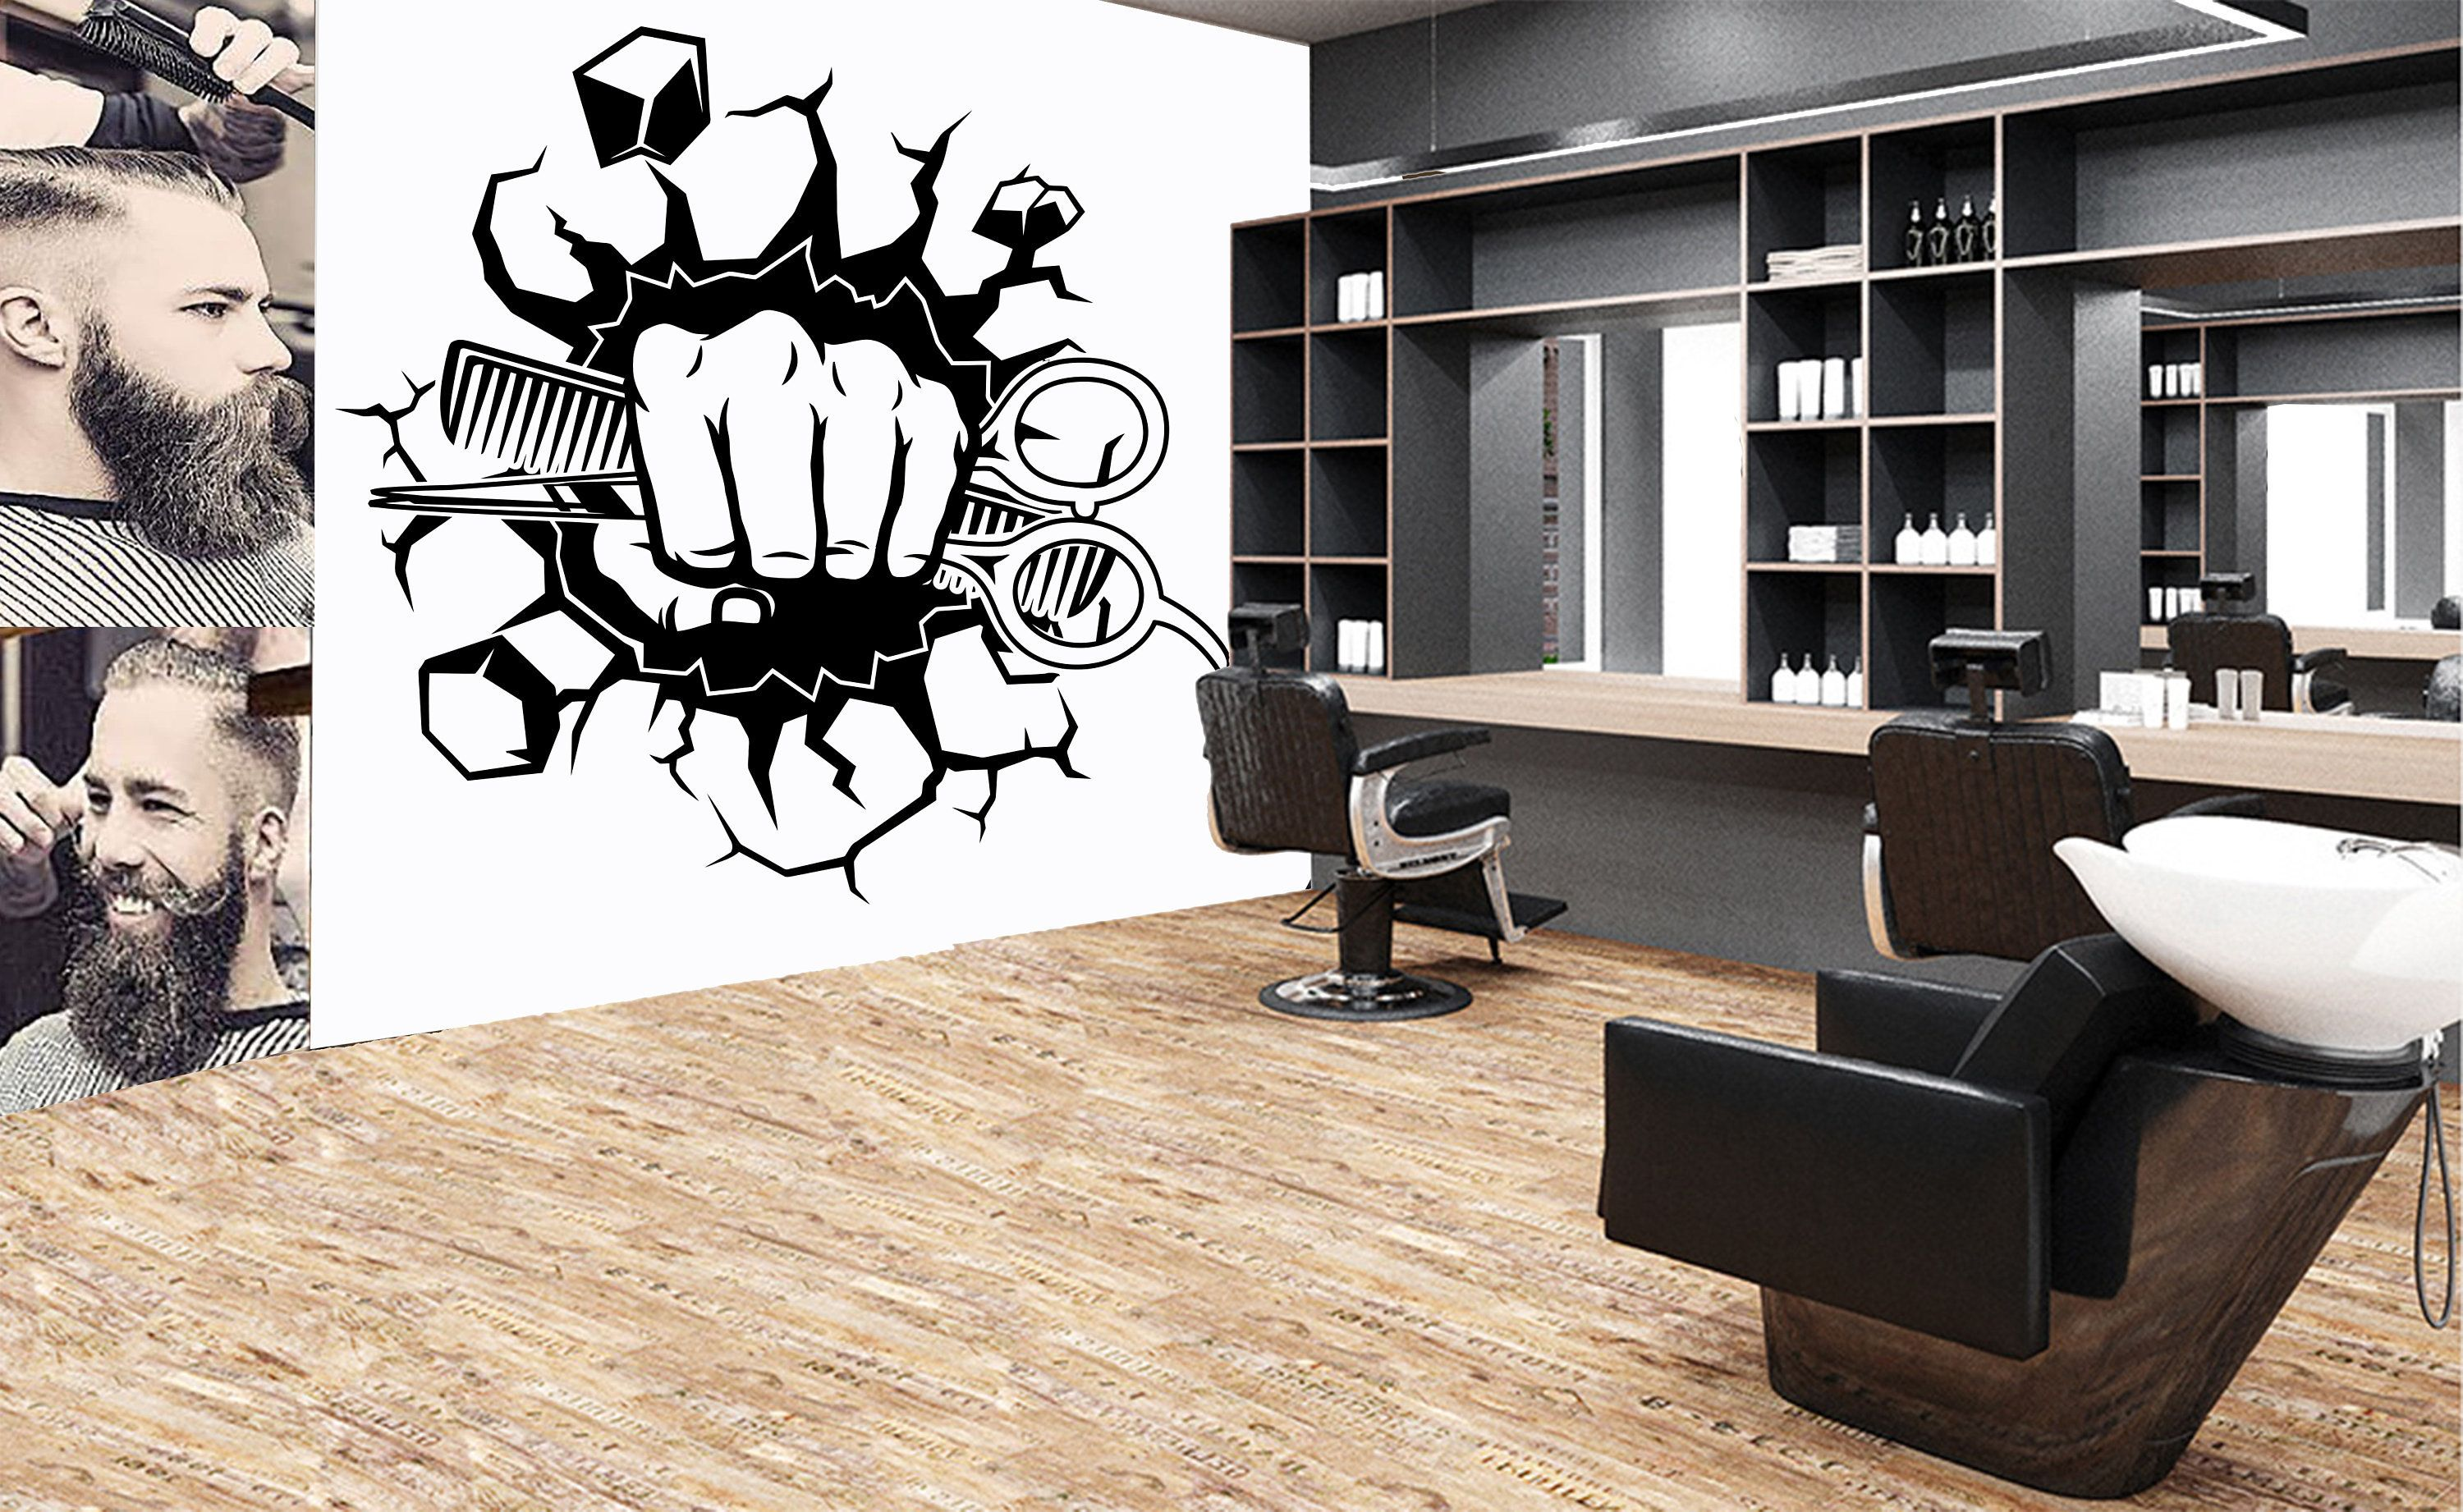 Barber Wall Decal Custom Barber Shop Wall Decor Man Salon Etsy Barber Shop Decor Shop Wall Decor Barber Shop